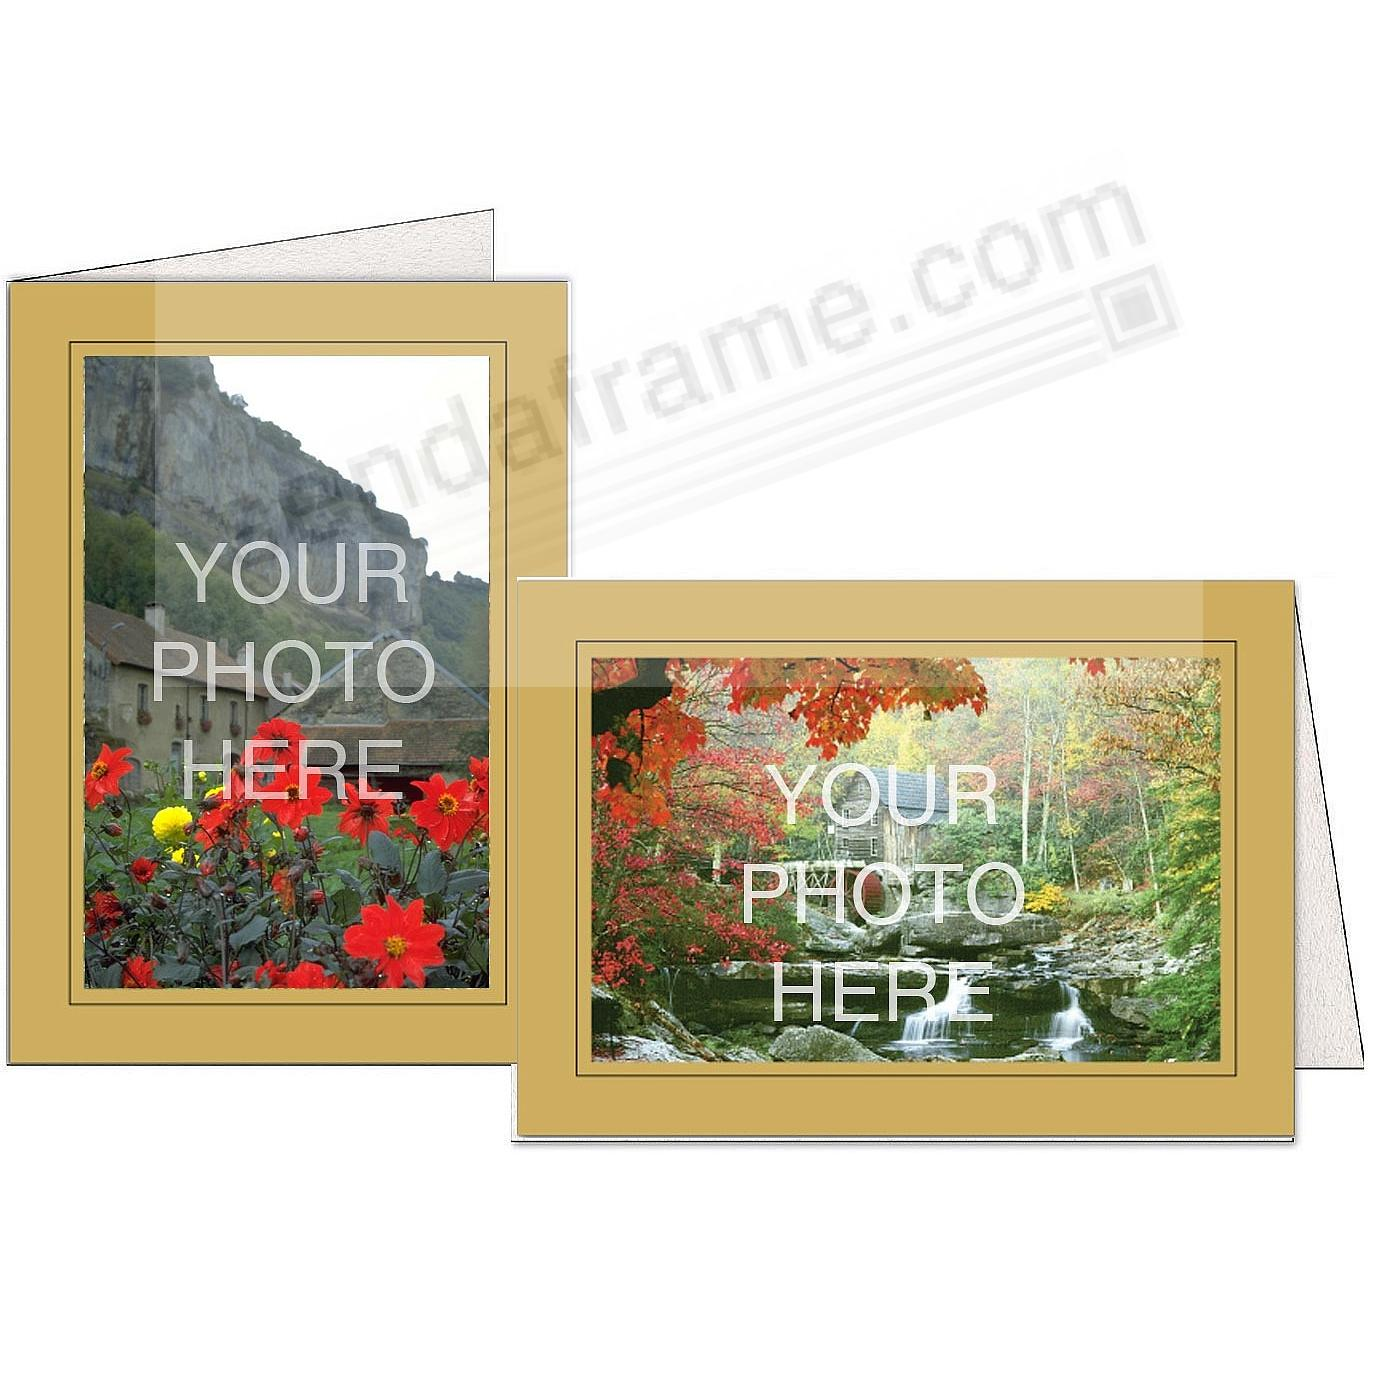 HONEY w/Black Trim Border Photo Insert Card (sold in 10s)